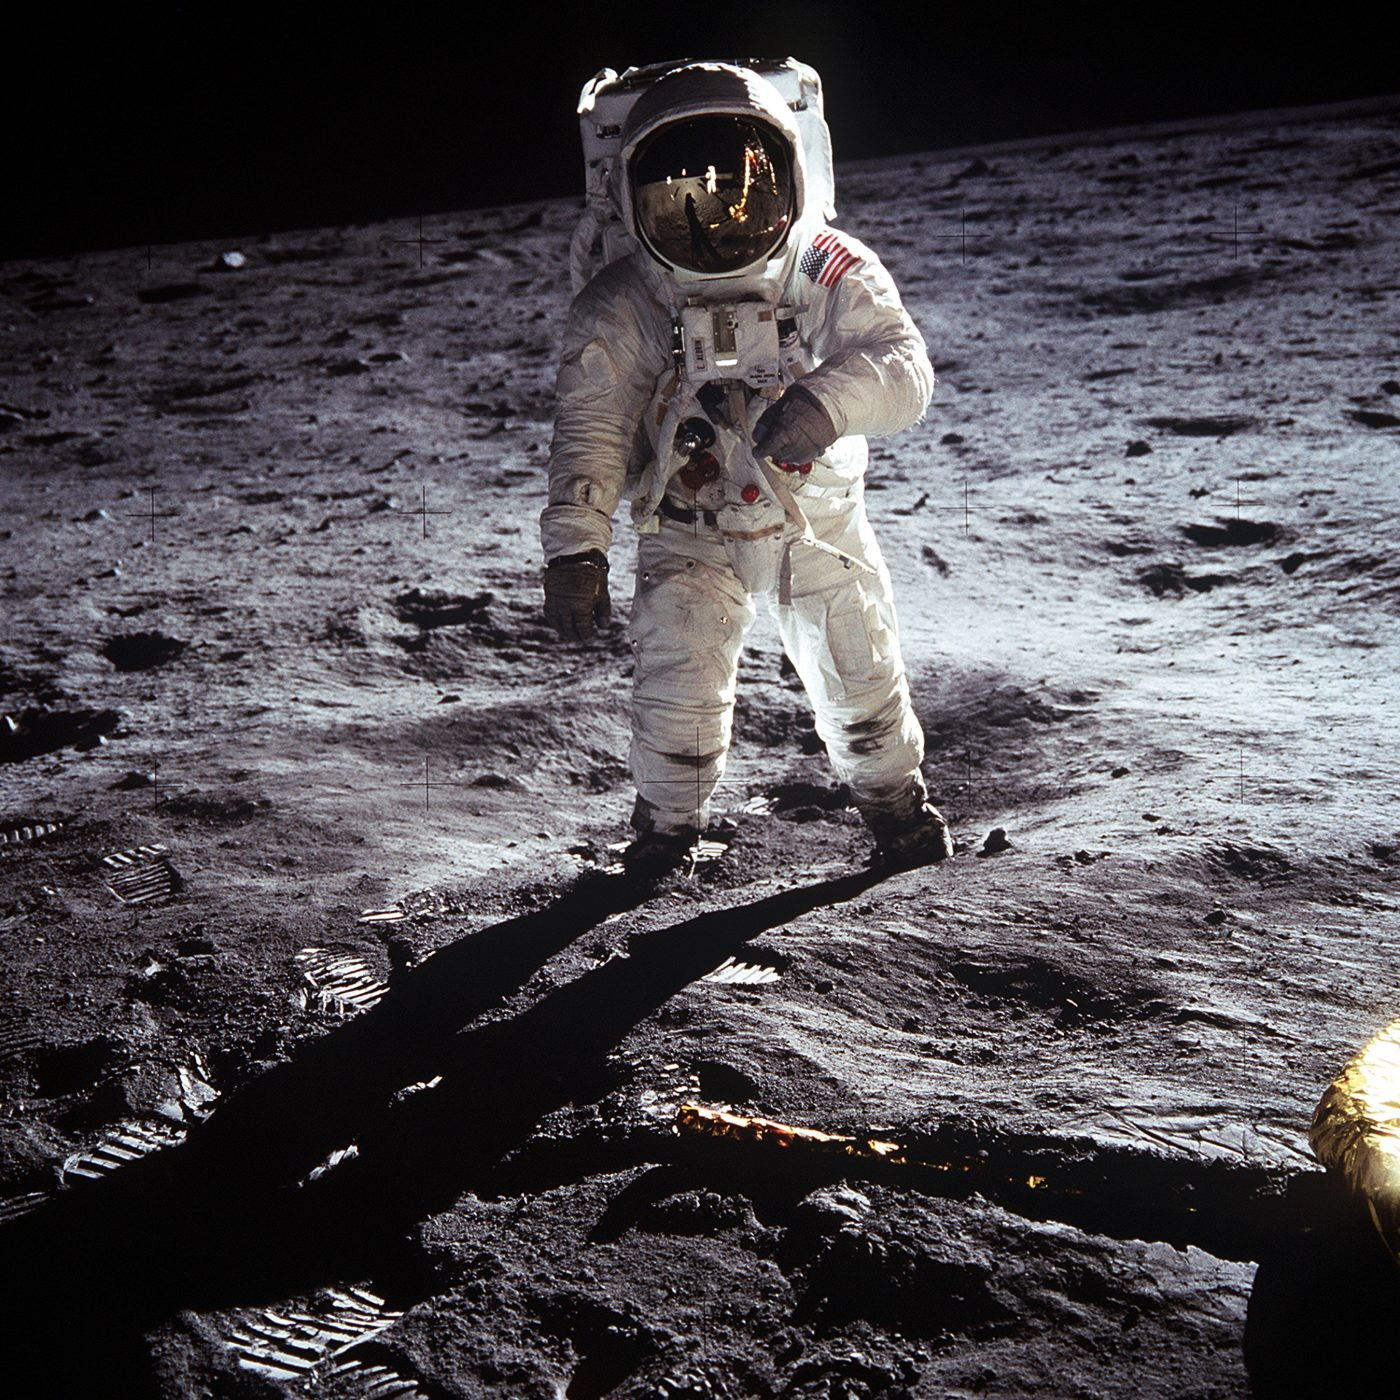 Image: Buzz Aldrin standing in a spacesuit on the moon